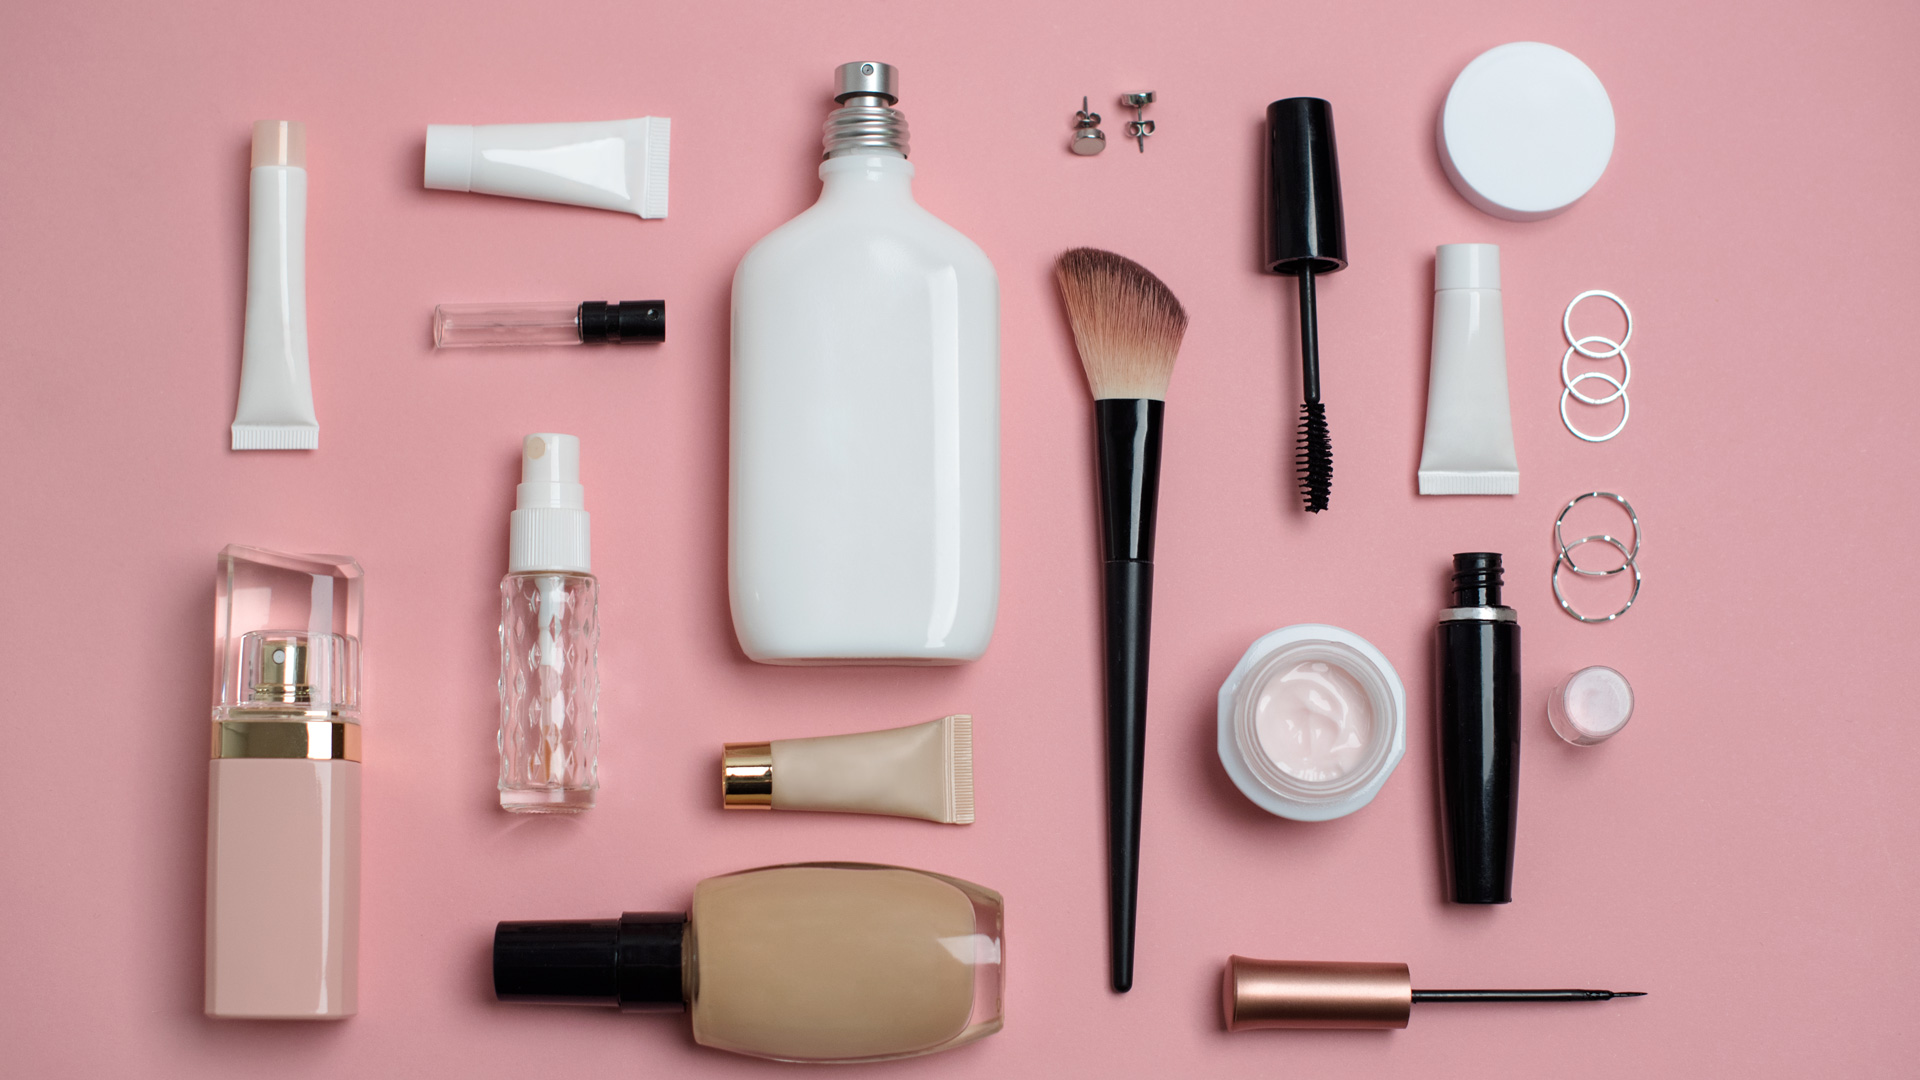 Marie Claire is breaking into the beauty ecommerce space with a new shopping platform.